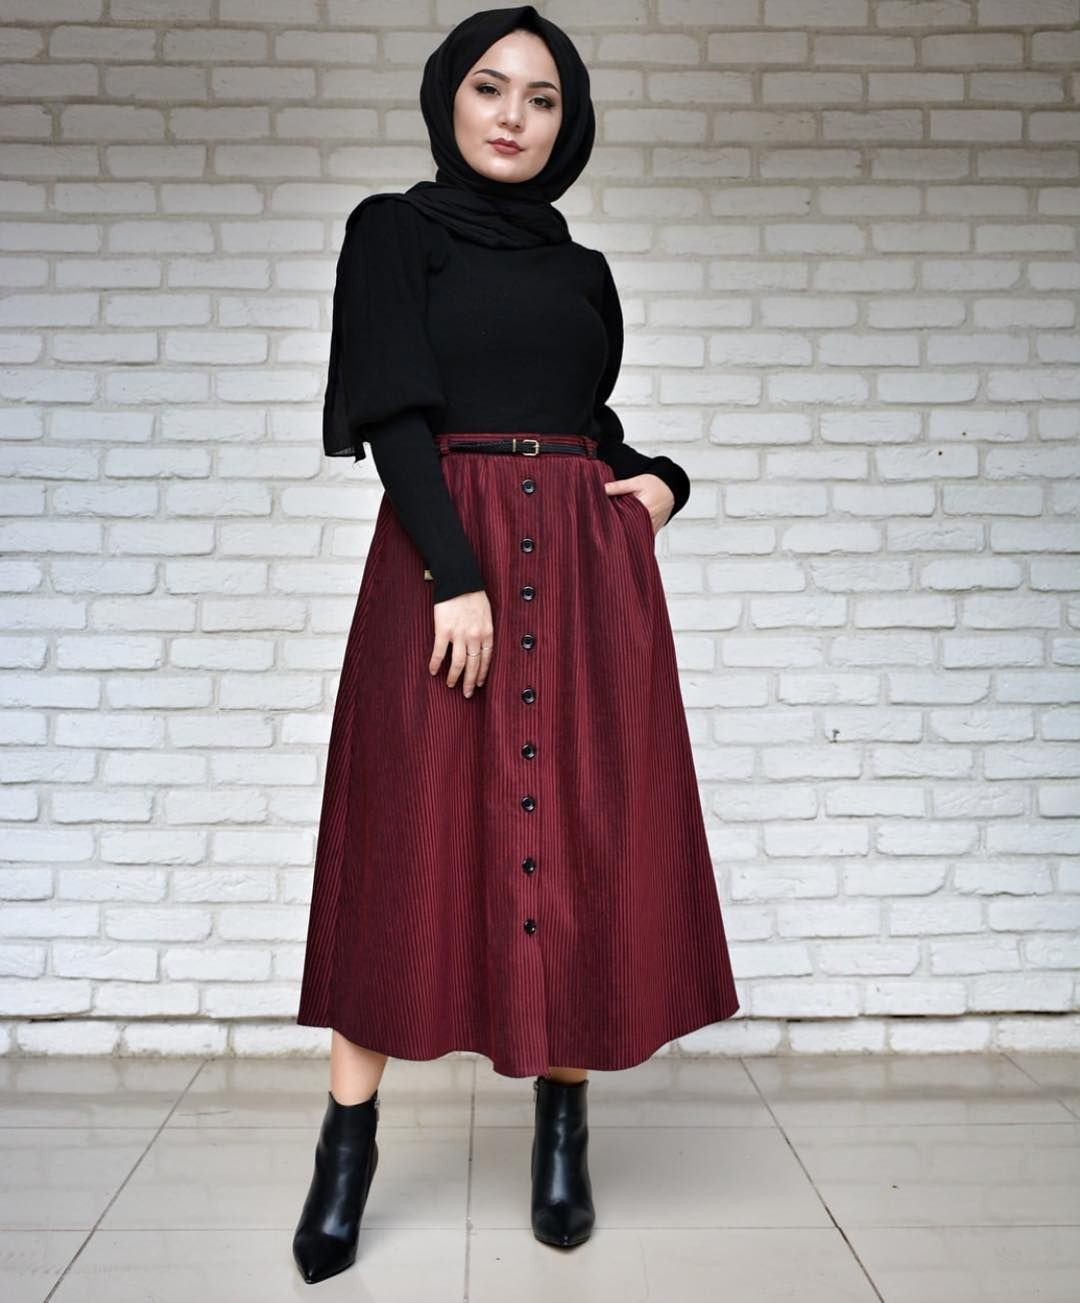 Hijab Fashion on Instagram \u201c@kocinbutik hijabfashion\u201d